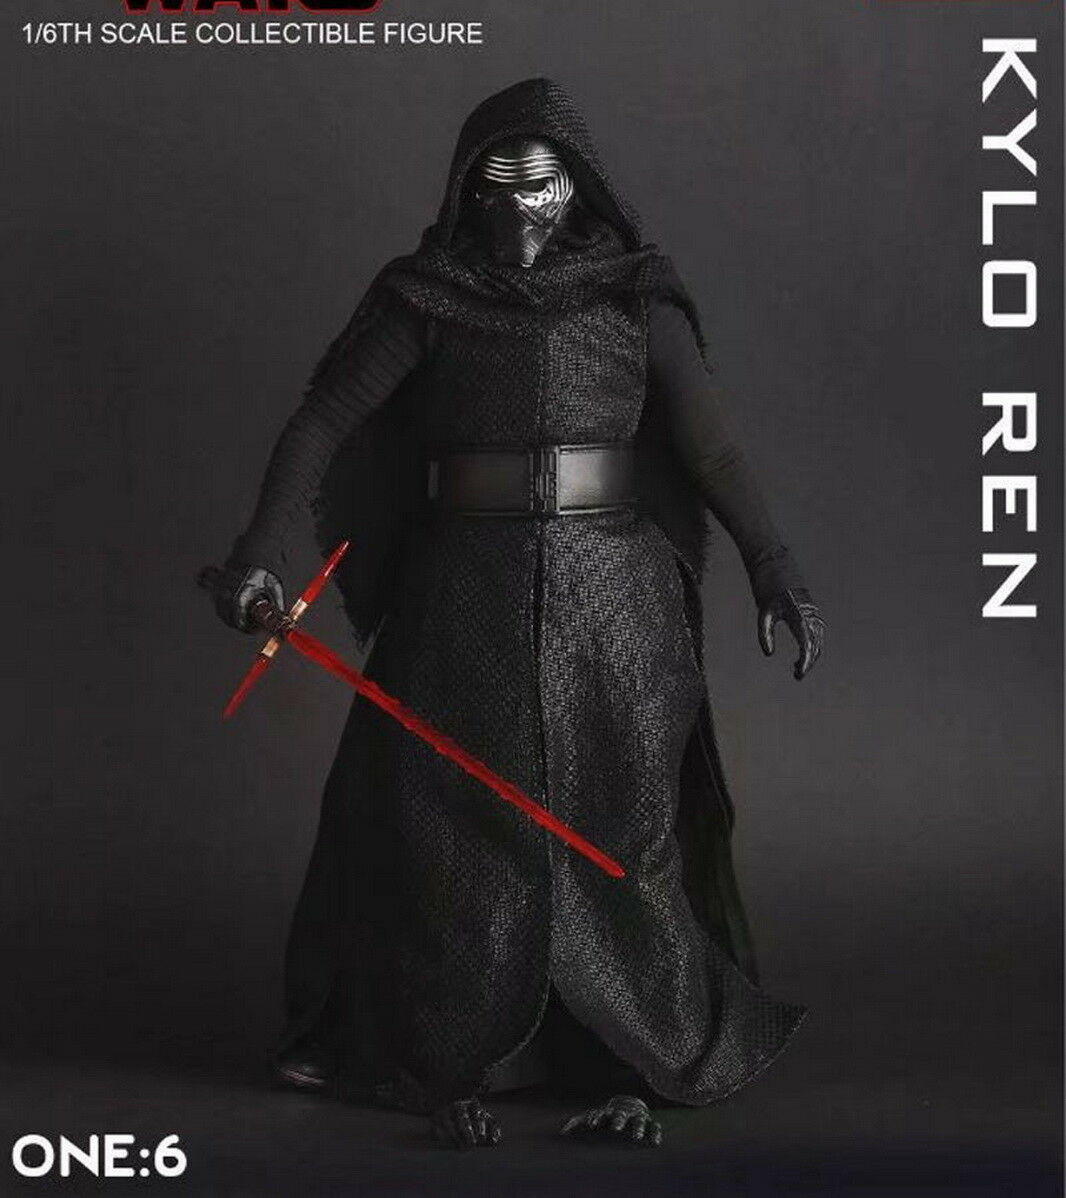 Crazy Toys 1 6TH SCALE Star Wars Kylo Ren Model Action Figure Toy Doll Statue  | Qualität